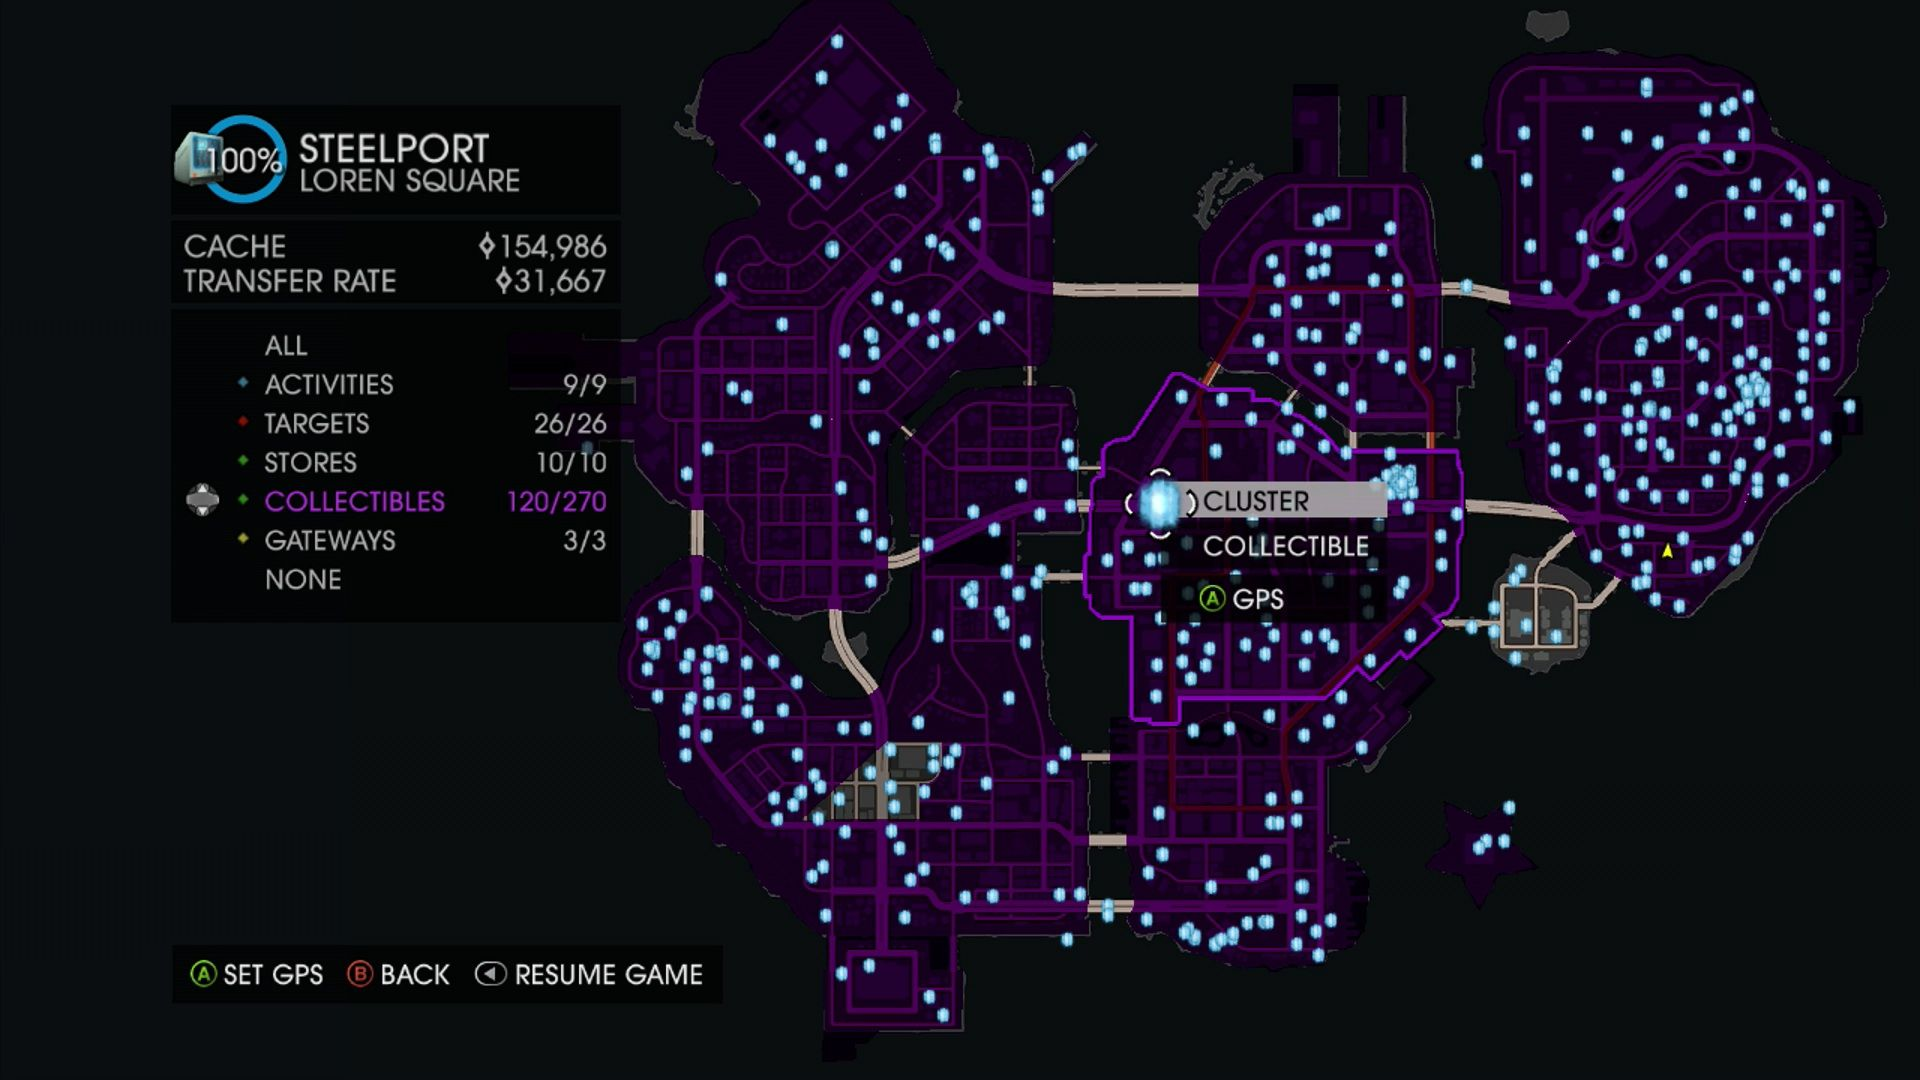 Saints Row 4 Clusters Locations With Images Saints Row 4